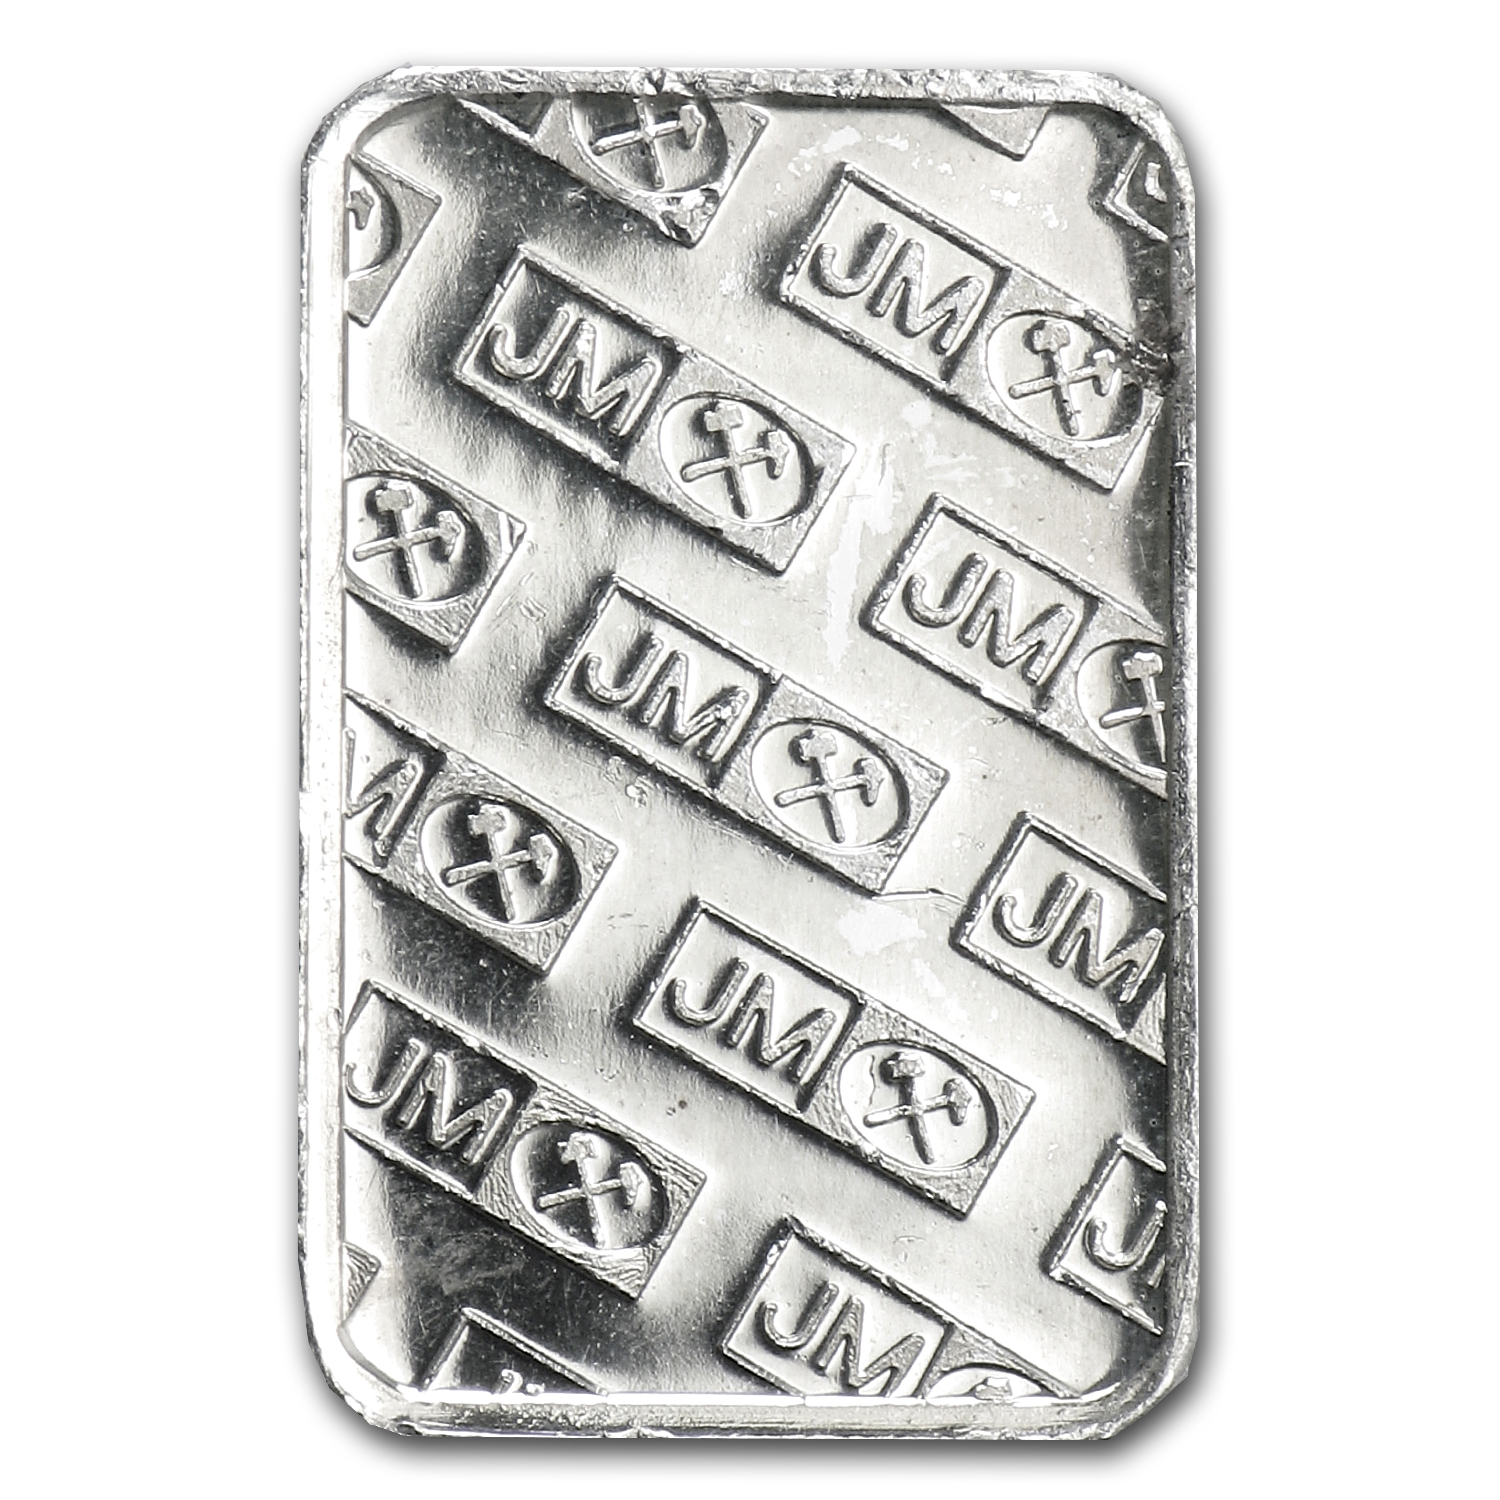 1 gram Silver Bars - Johnson Matthey